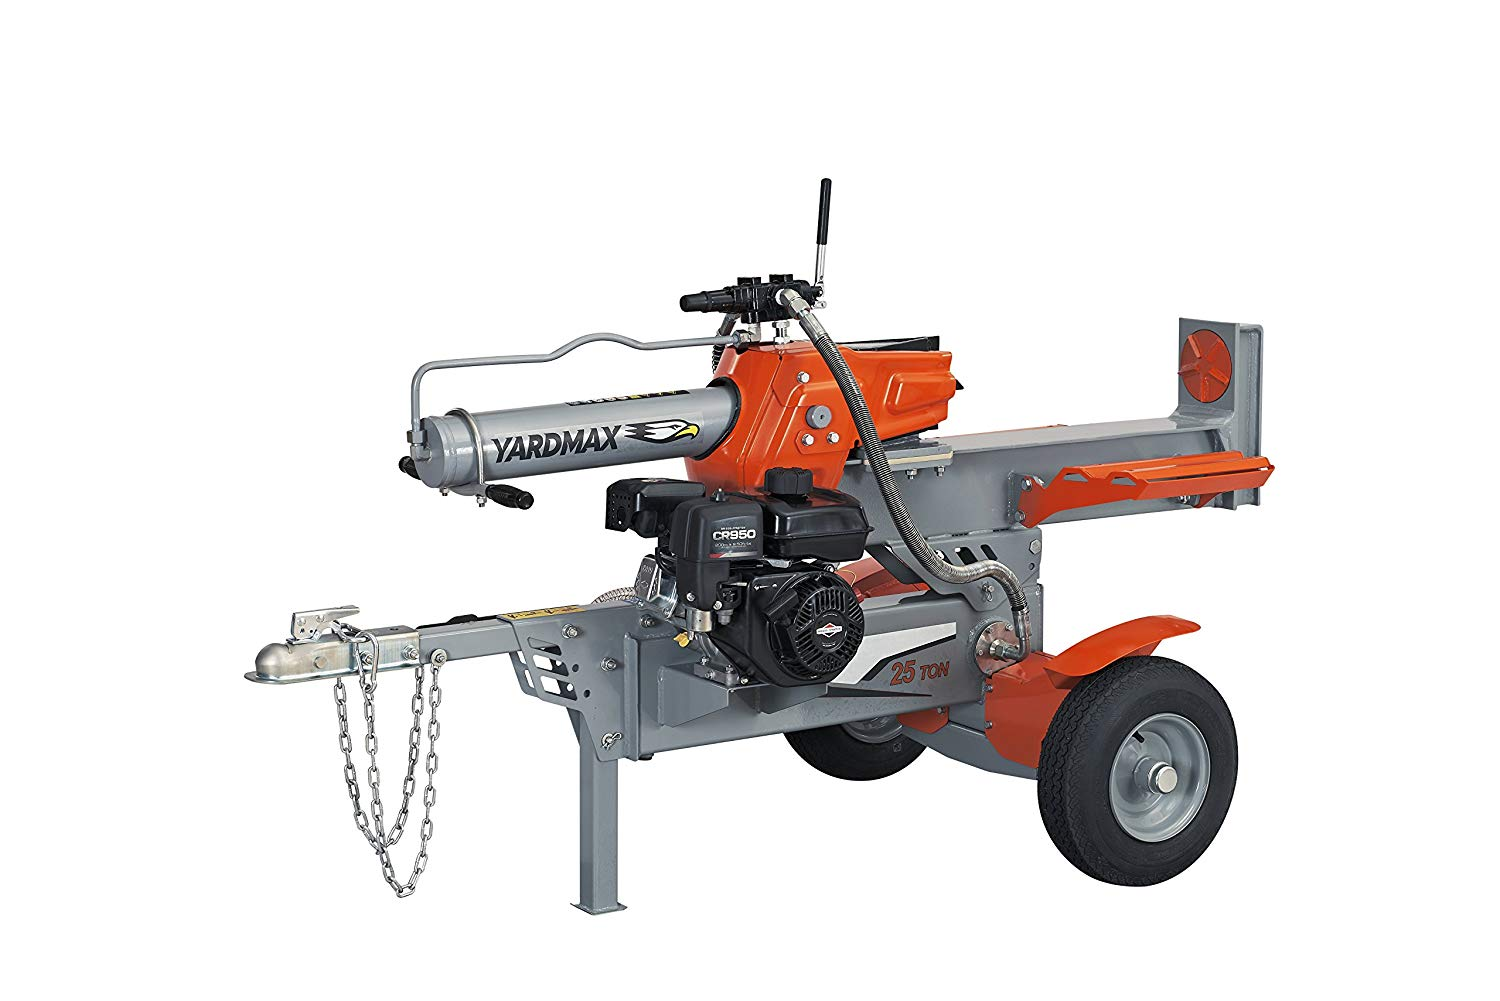 YARDMAX YS2565 25 Ton Half Beam Gas Log Splitter, 4-Way Wedge, Briggs & Stratton, CR950, 6.5HP, 208cc